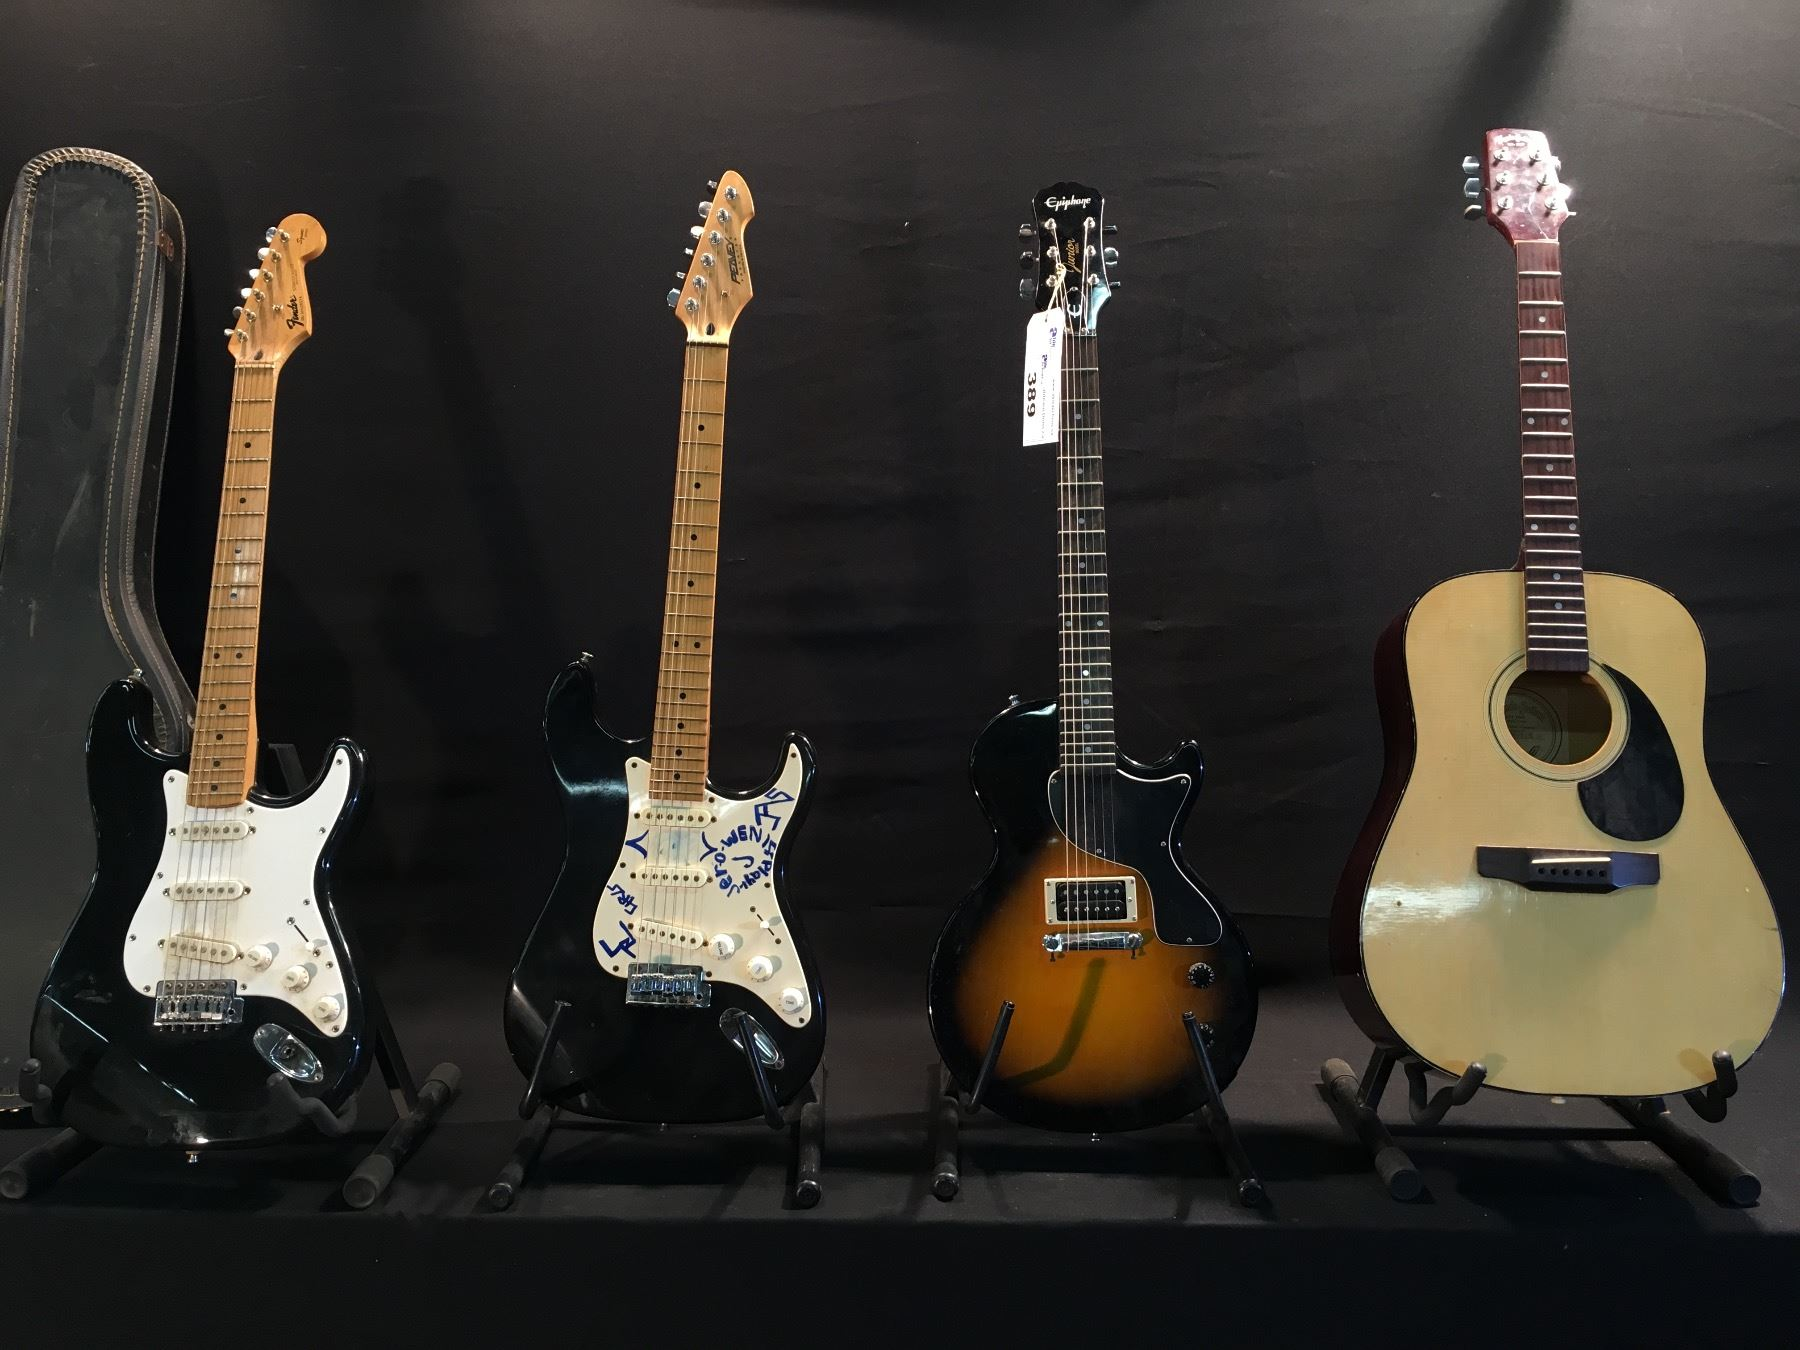 4 Guitars Fender Stratocaster Made In Mexico With